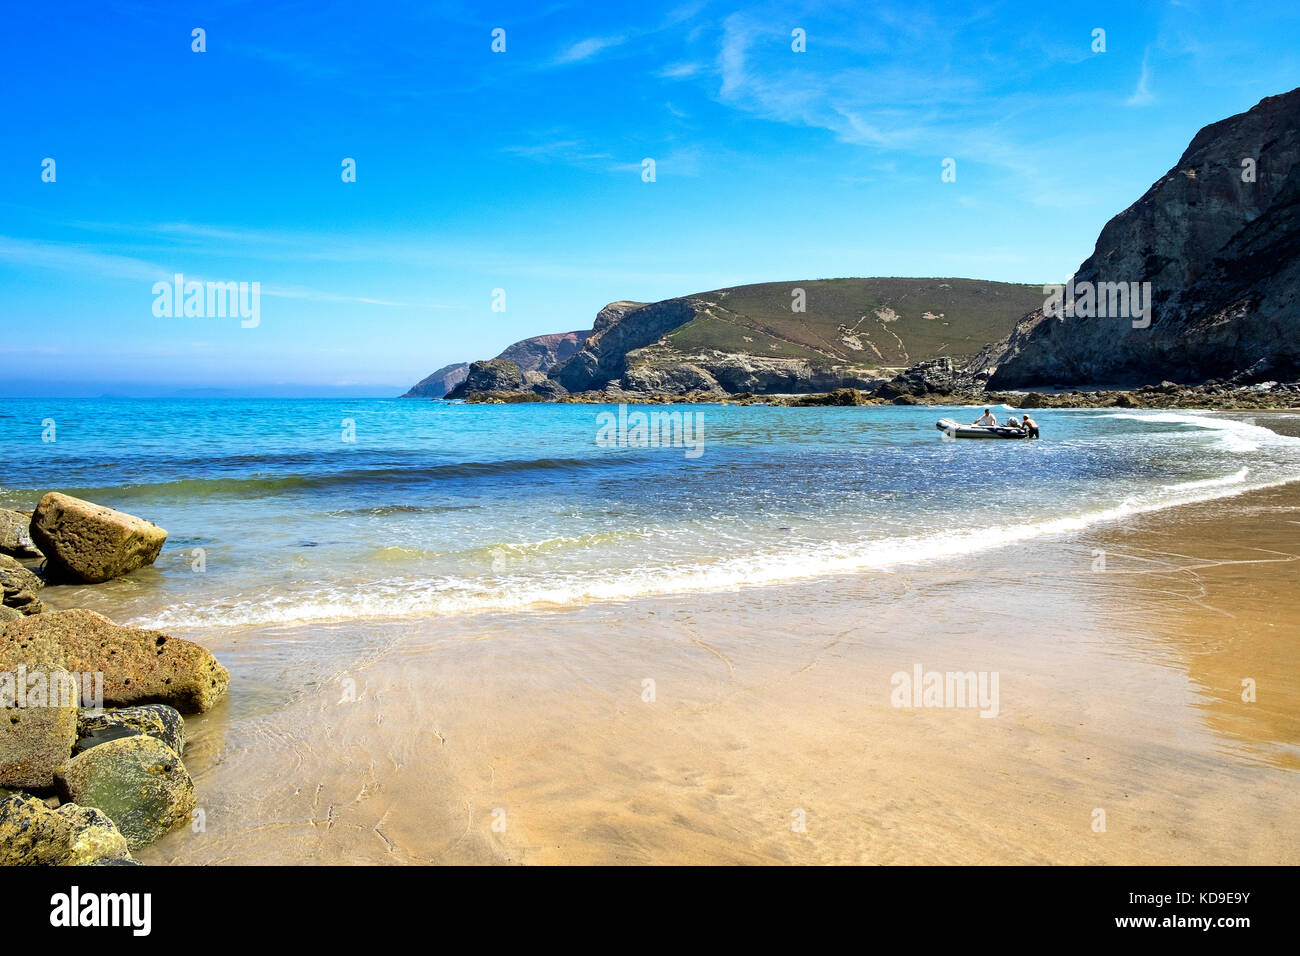 trevaunance cove at st.agnes in cornwall, england, uk. - Stock Image